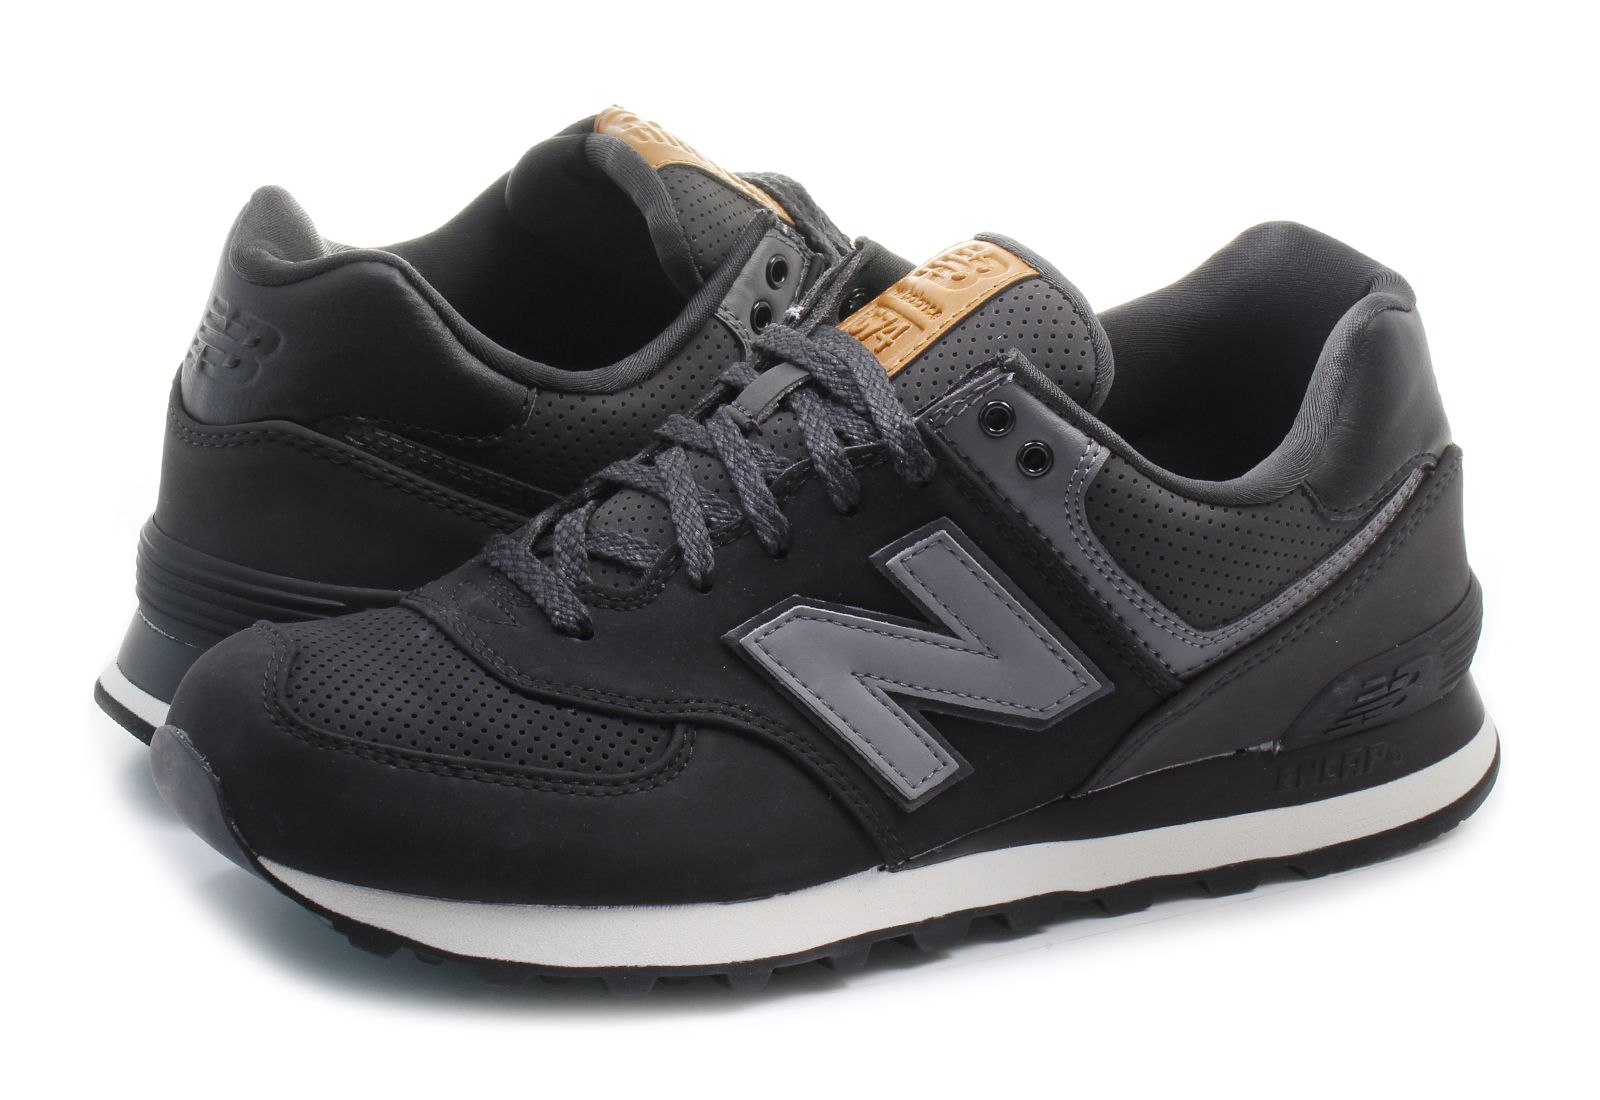 035041d66d5 New Balance Shoes - Ml574 - ML574GPG - Online shop for sneakers ...